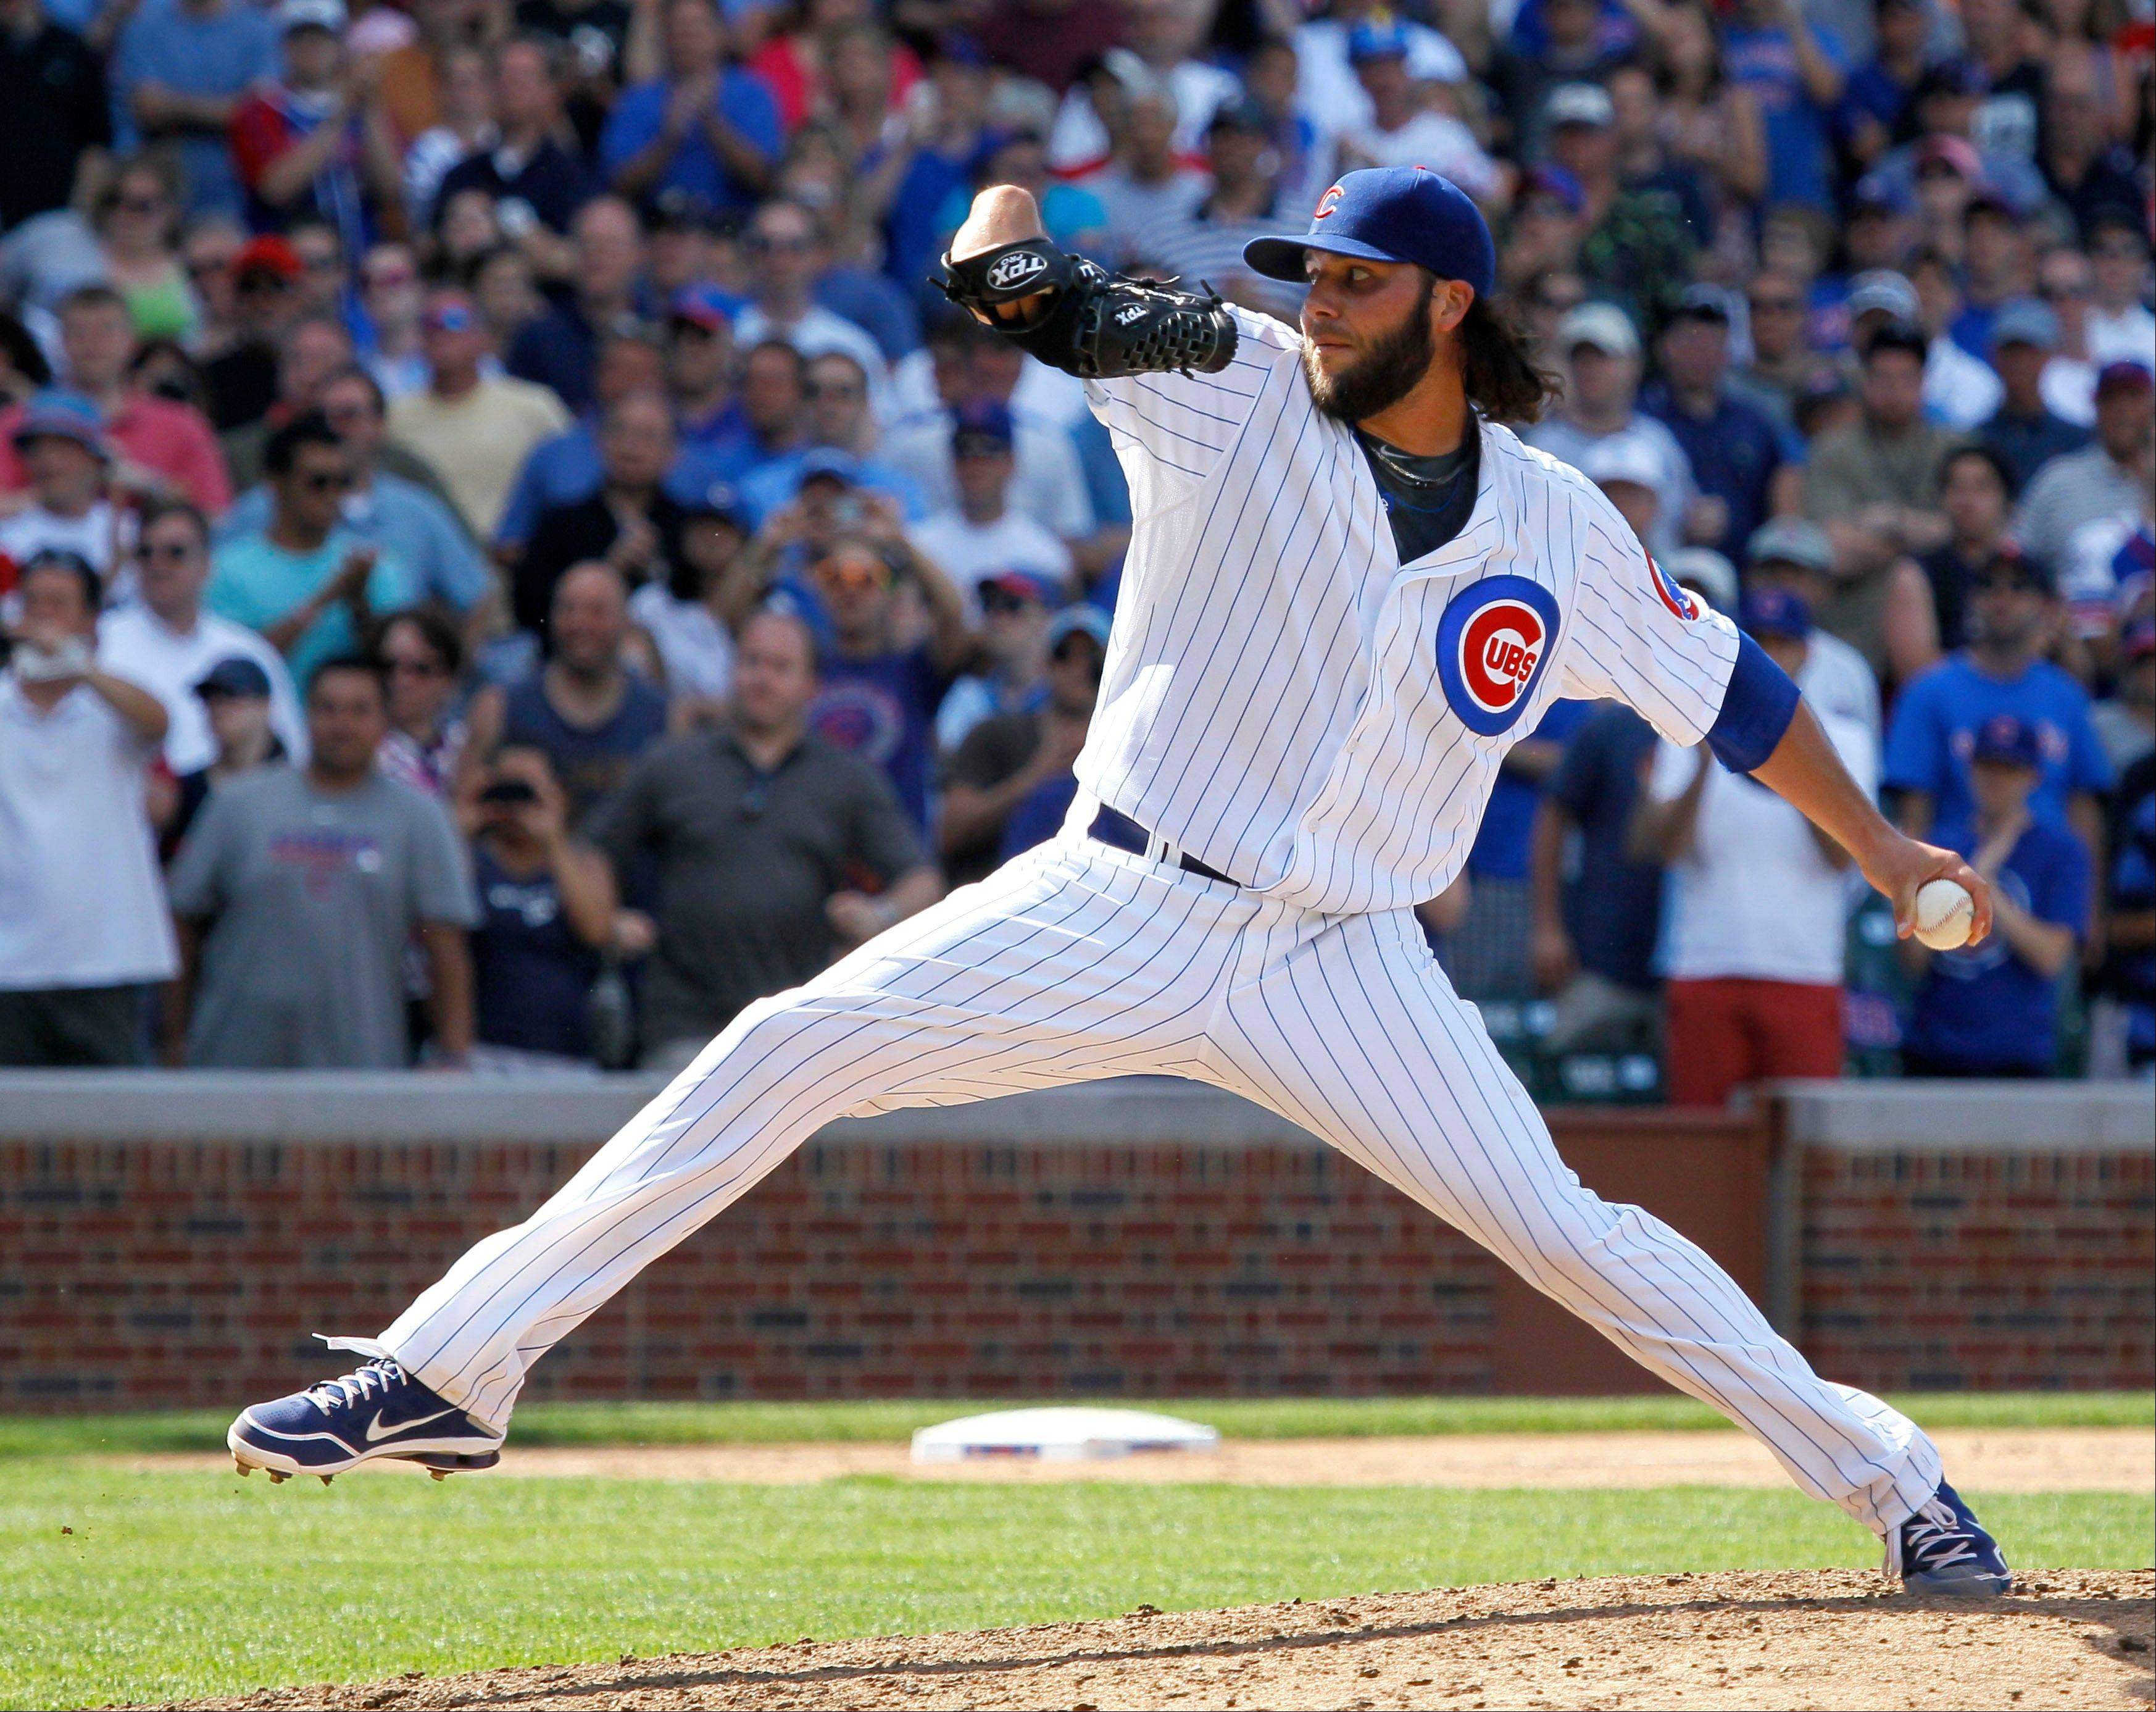 Camp, Russell deliver big outs for Cubs